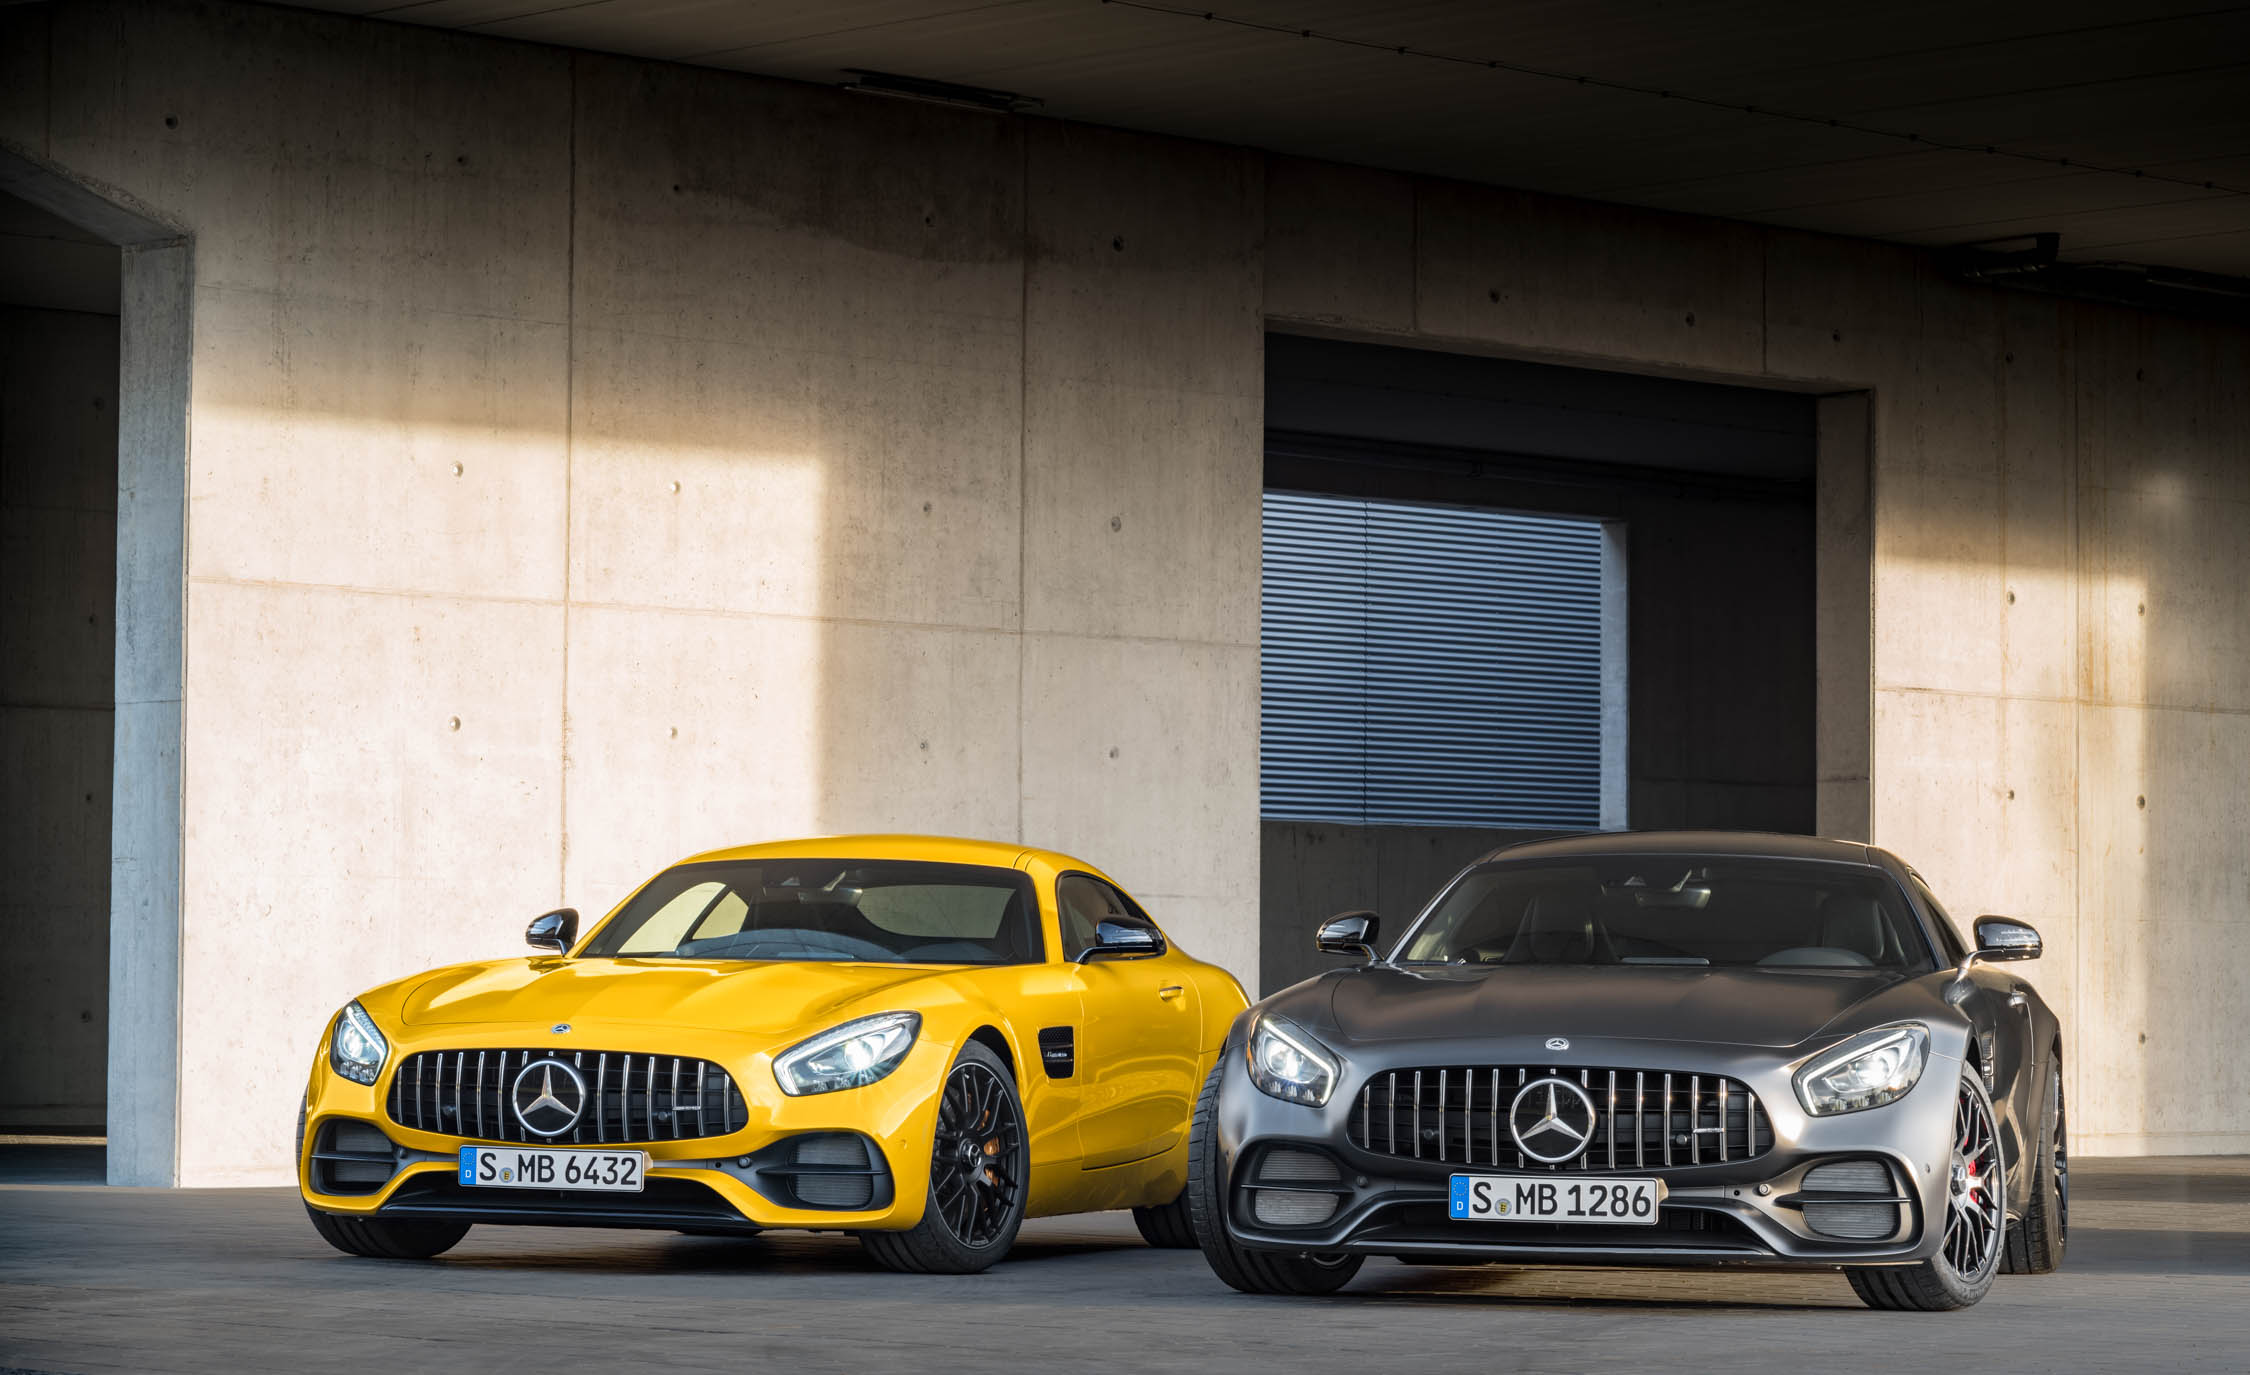 2018 Mercedes Amg Gt C And 2018 Mercedes Amg Gt S (Photo 2 of 23)